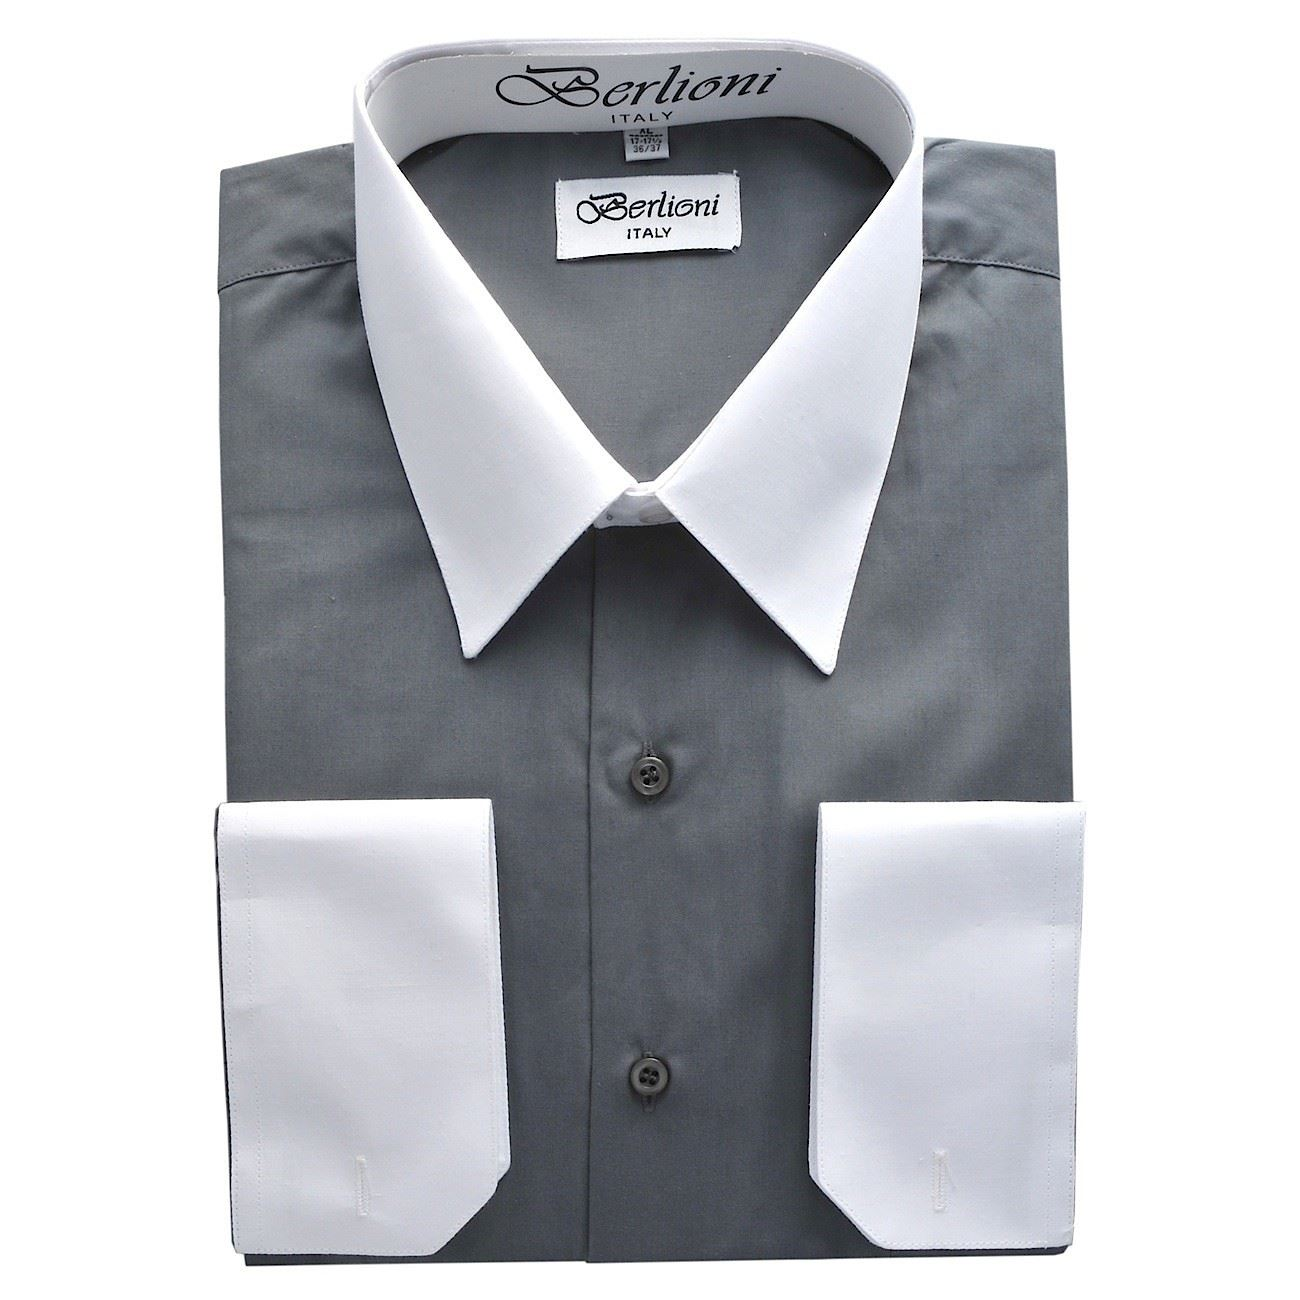 Berlioni Mens Italy Dress Shirt Two Tone French